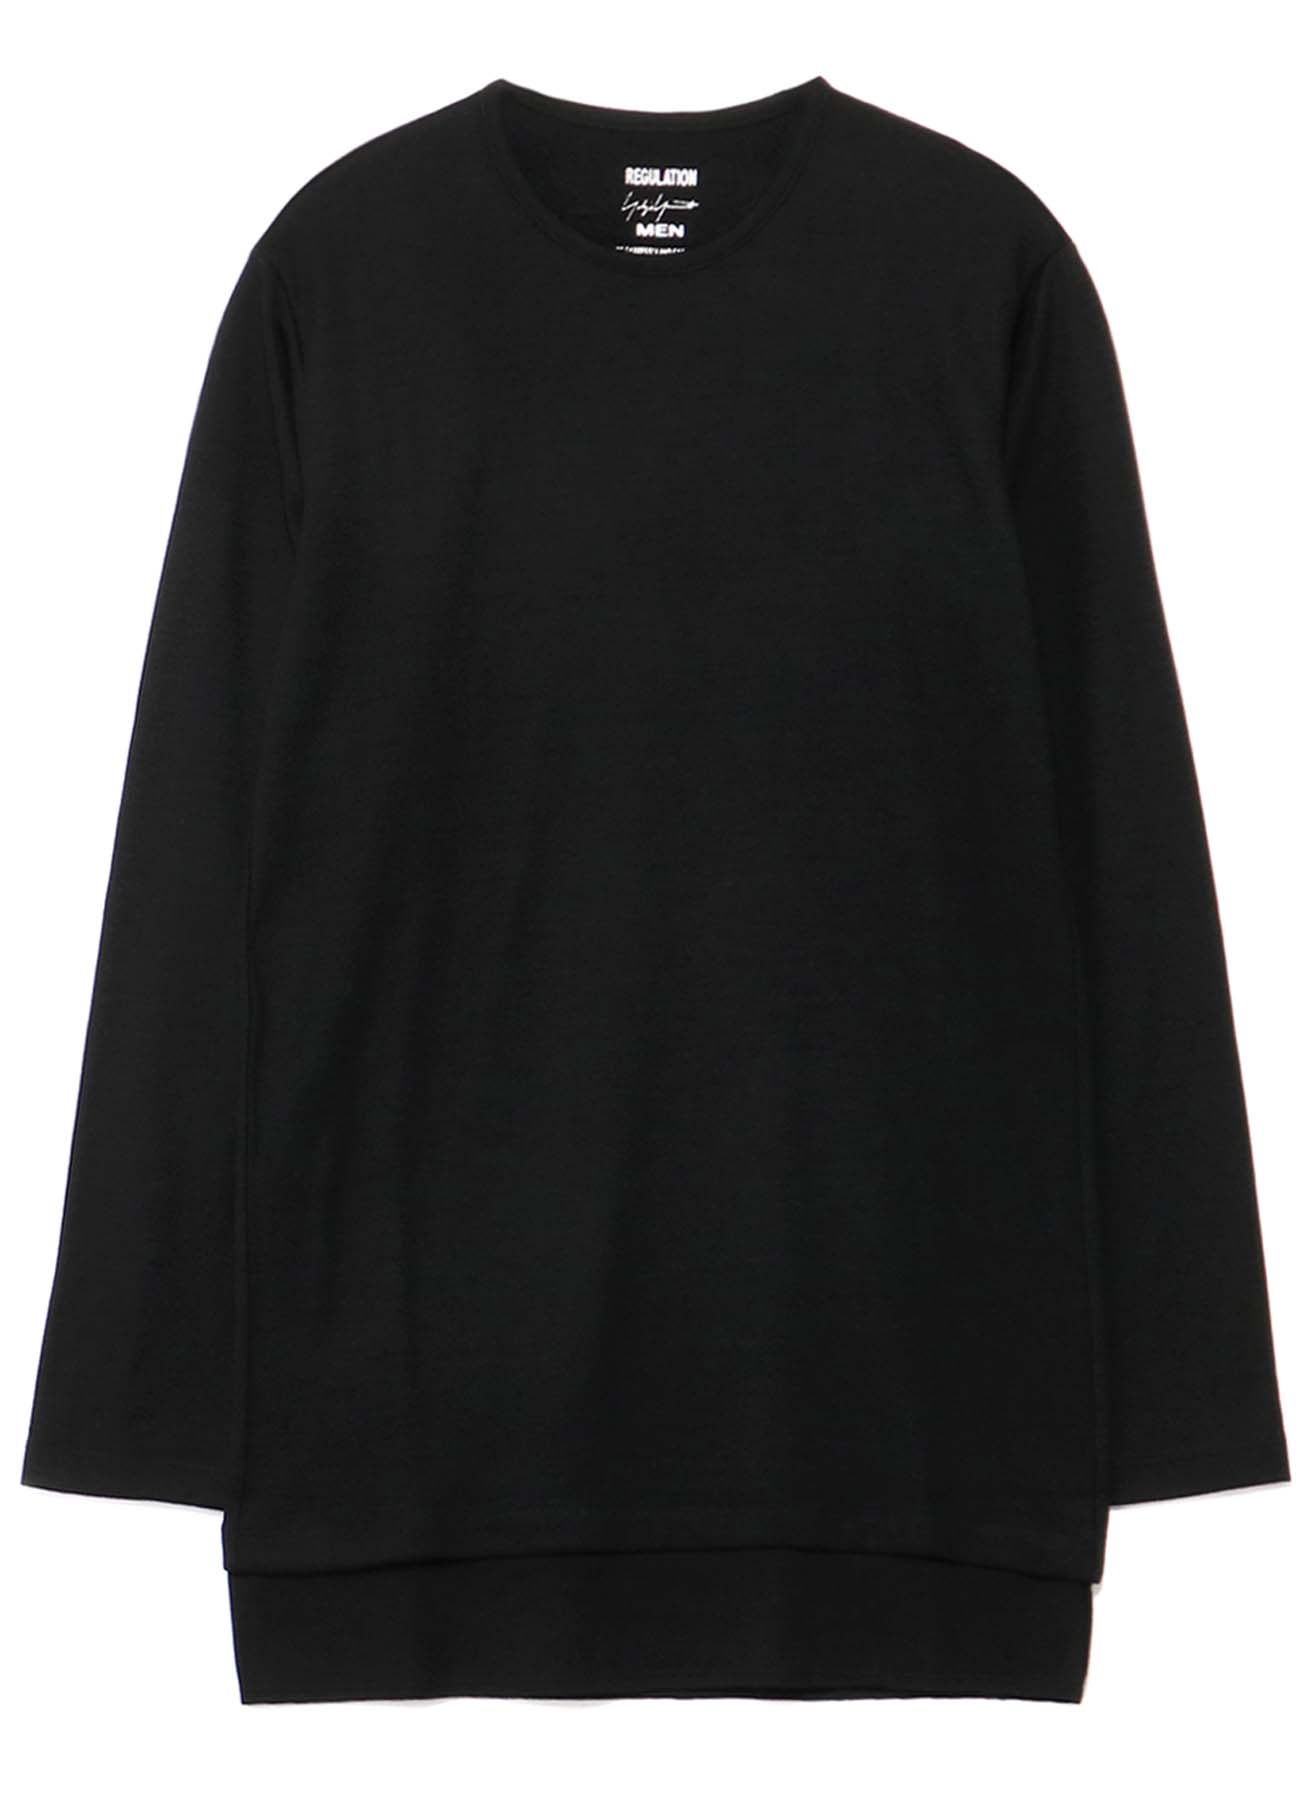 REGULATION 2/48 MILD WASHABLE  LONG SLEEVES ROUND NECK